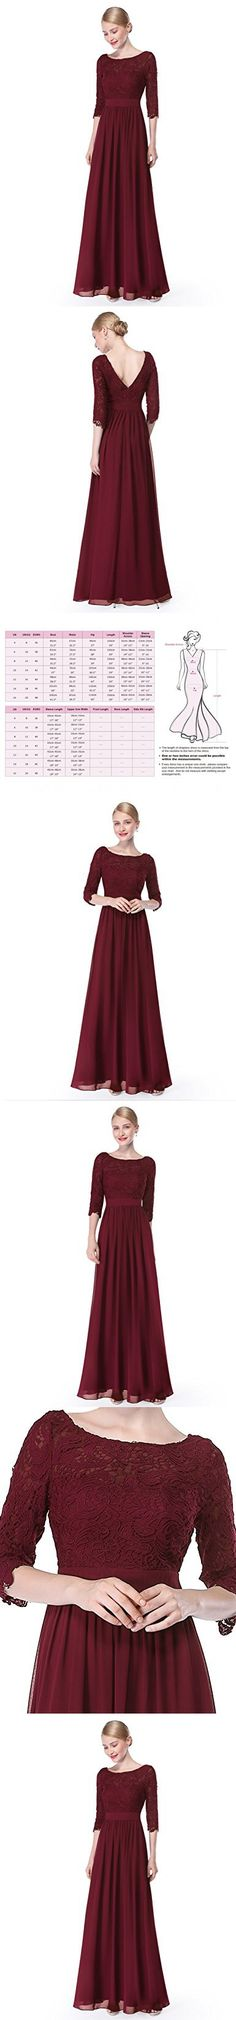 Ever Pretty Womens Three-Quarter Lace Sleeves Floor Length Bridesmaid Dress 16 US Burgandy